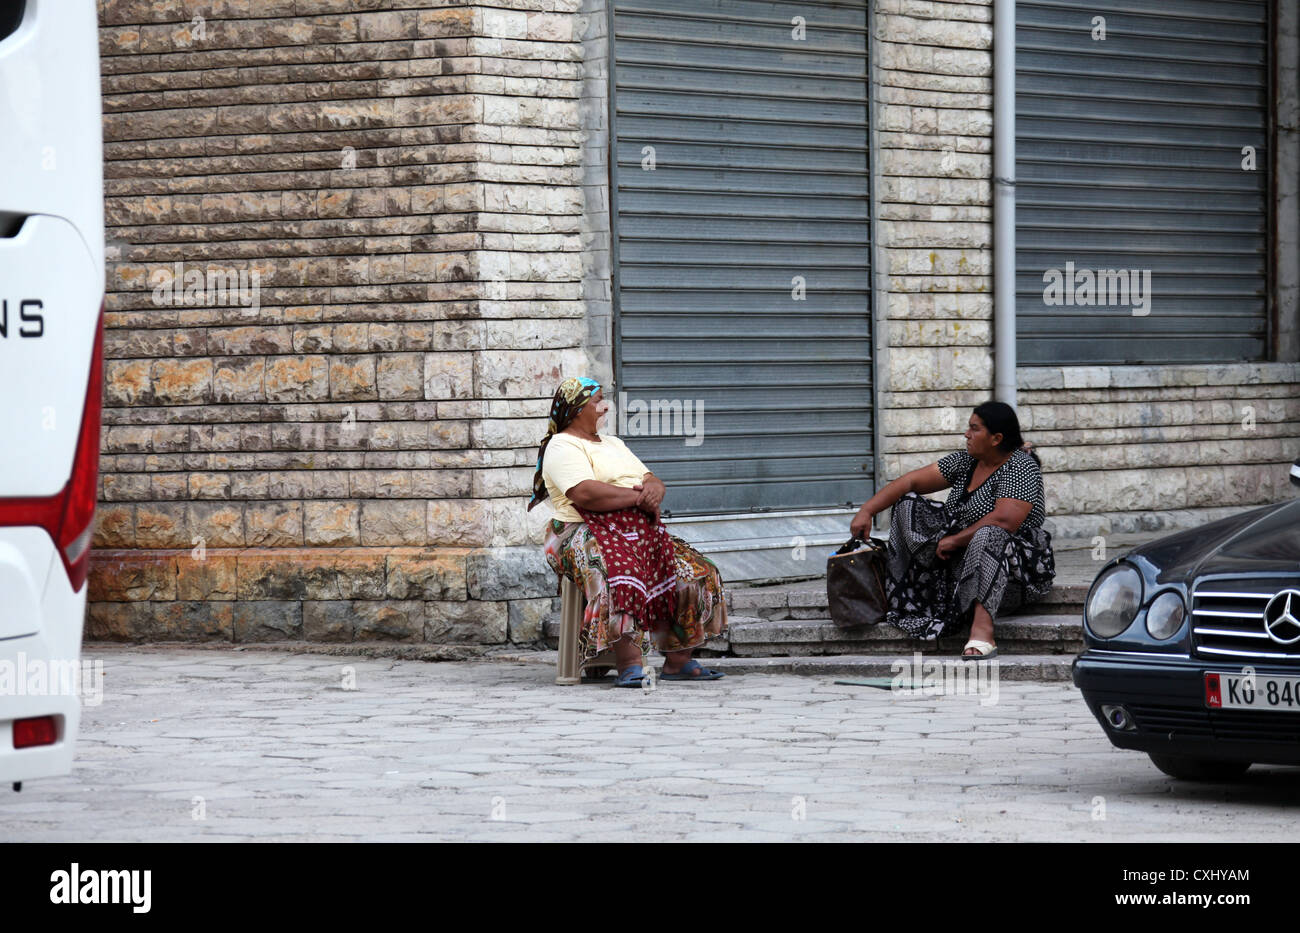 Albanian Roma Women Sat Chatting in the Street - Stock Image